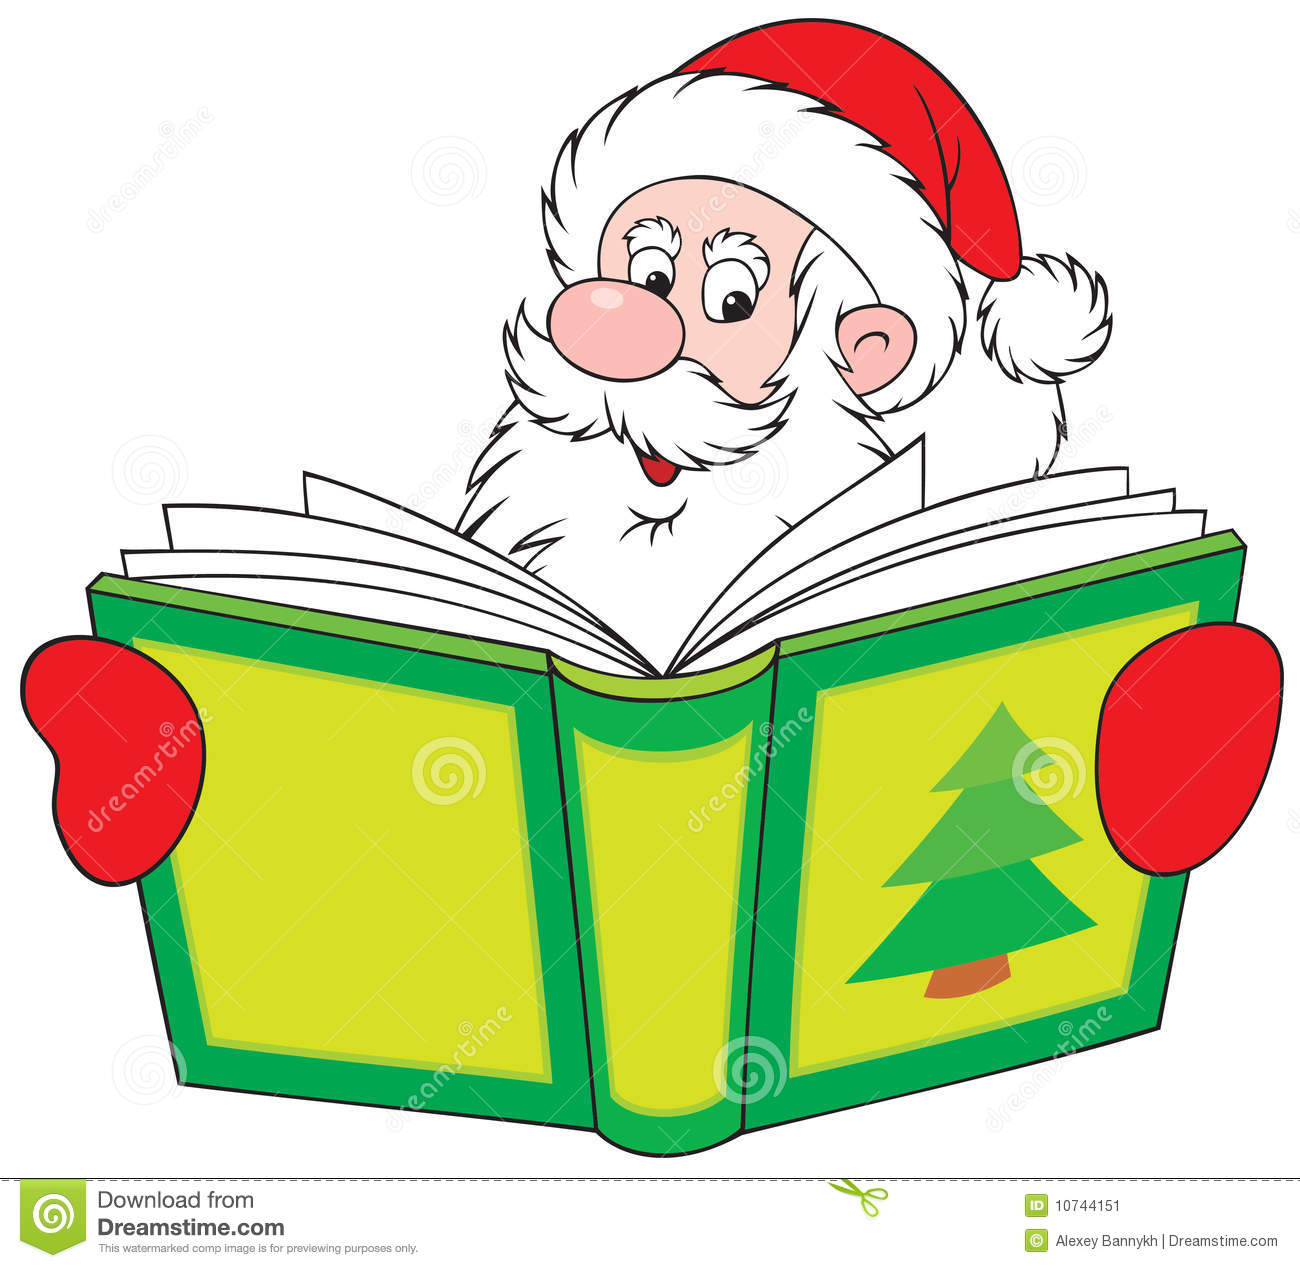 Santa Claus Reading The Book Stock Image   Image  10744151